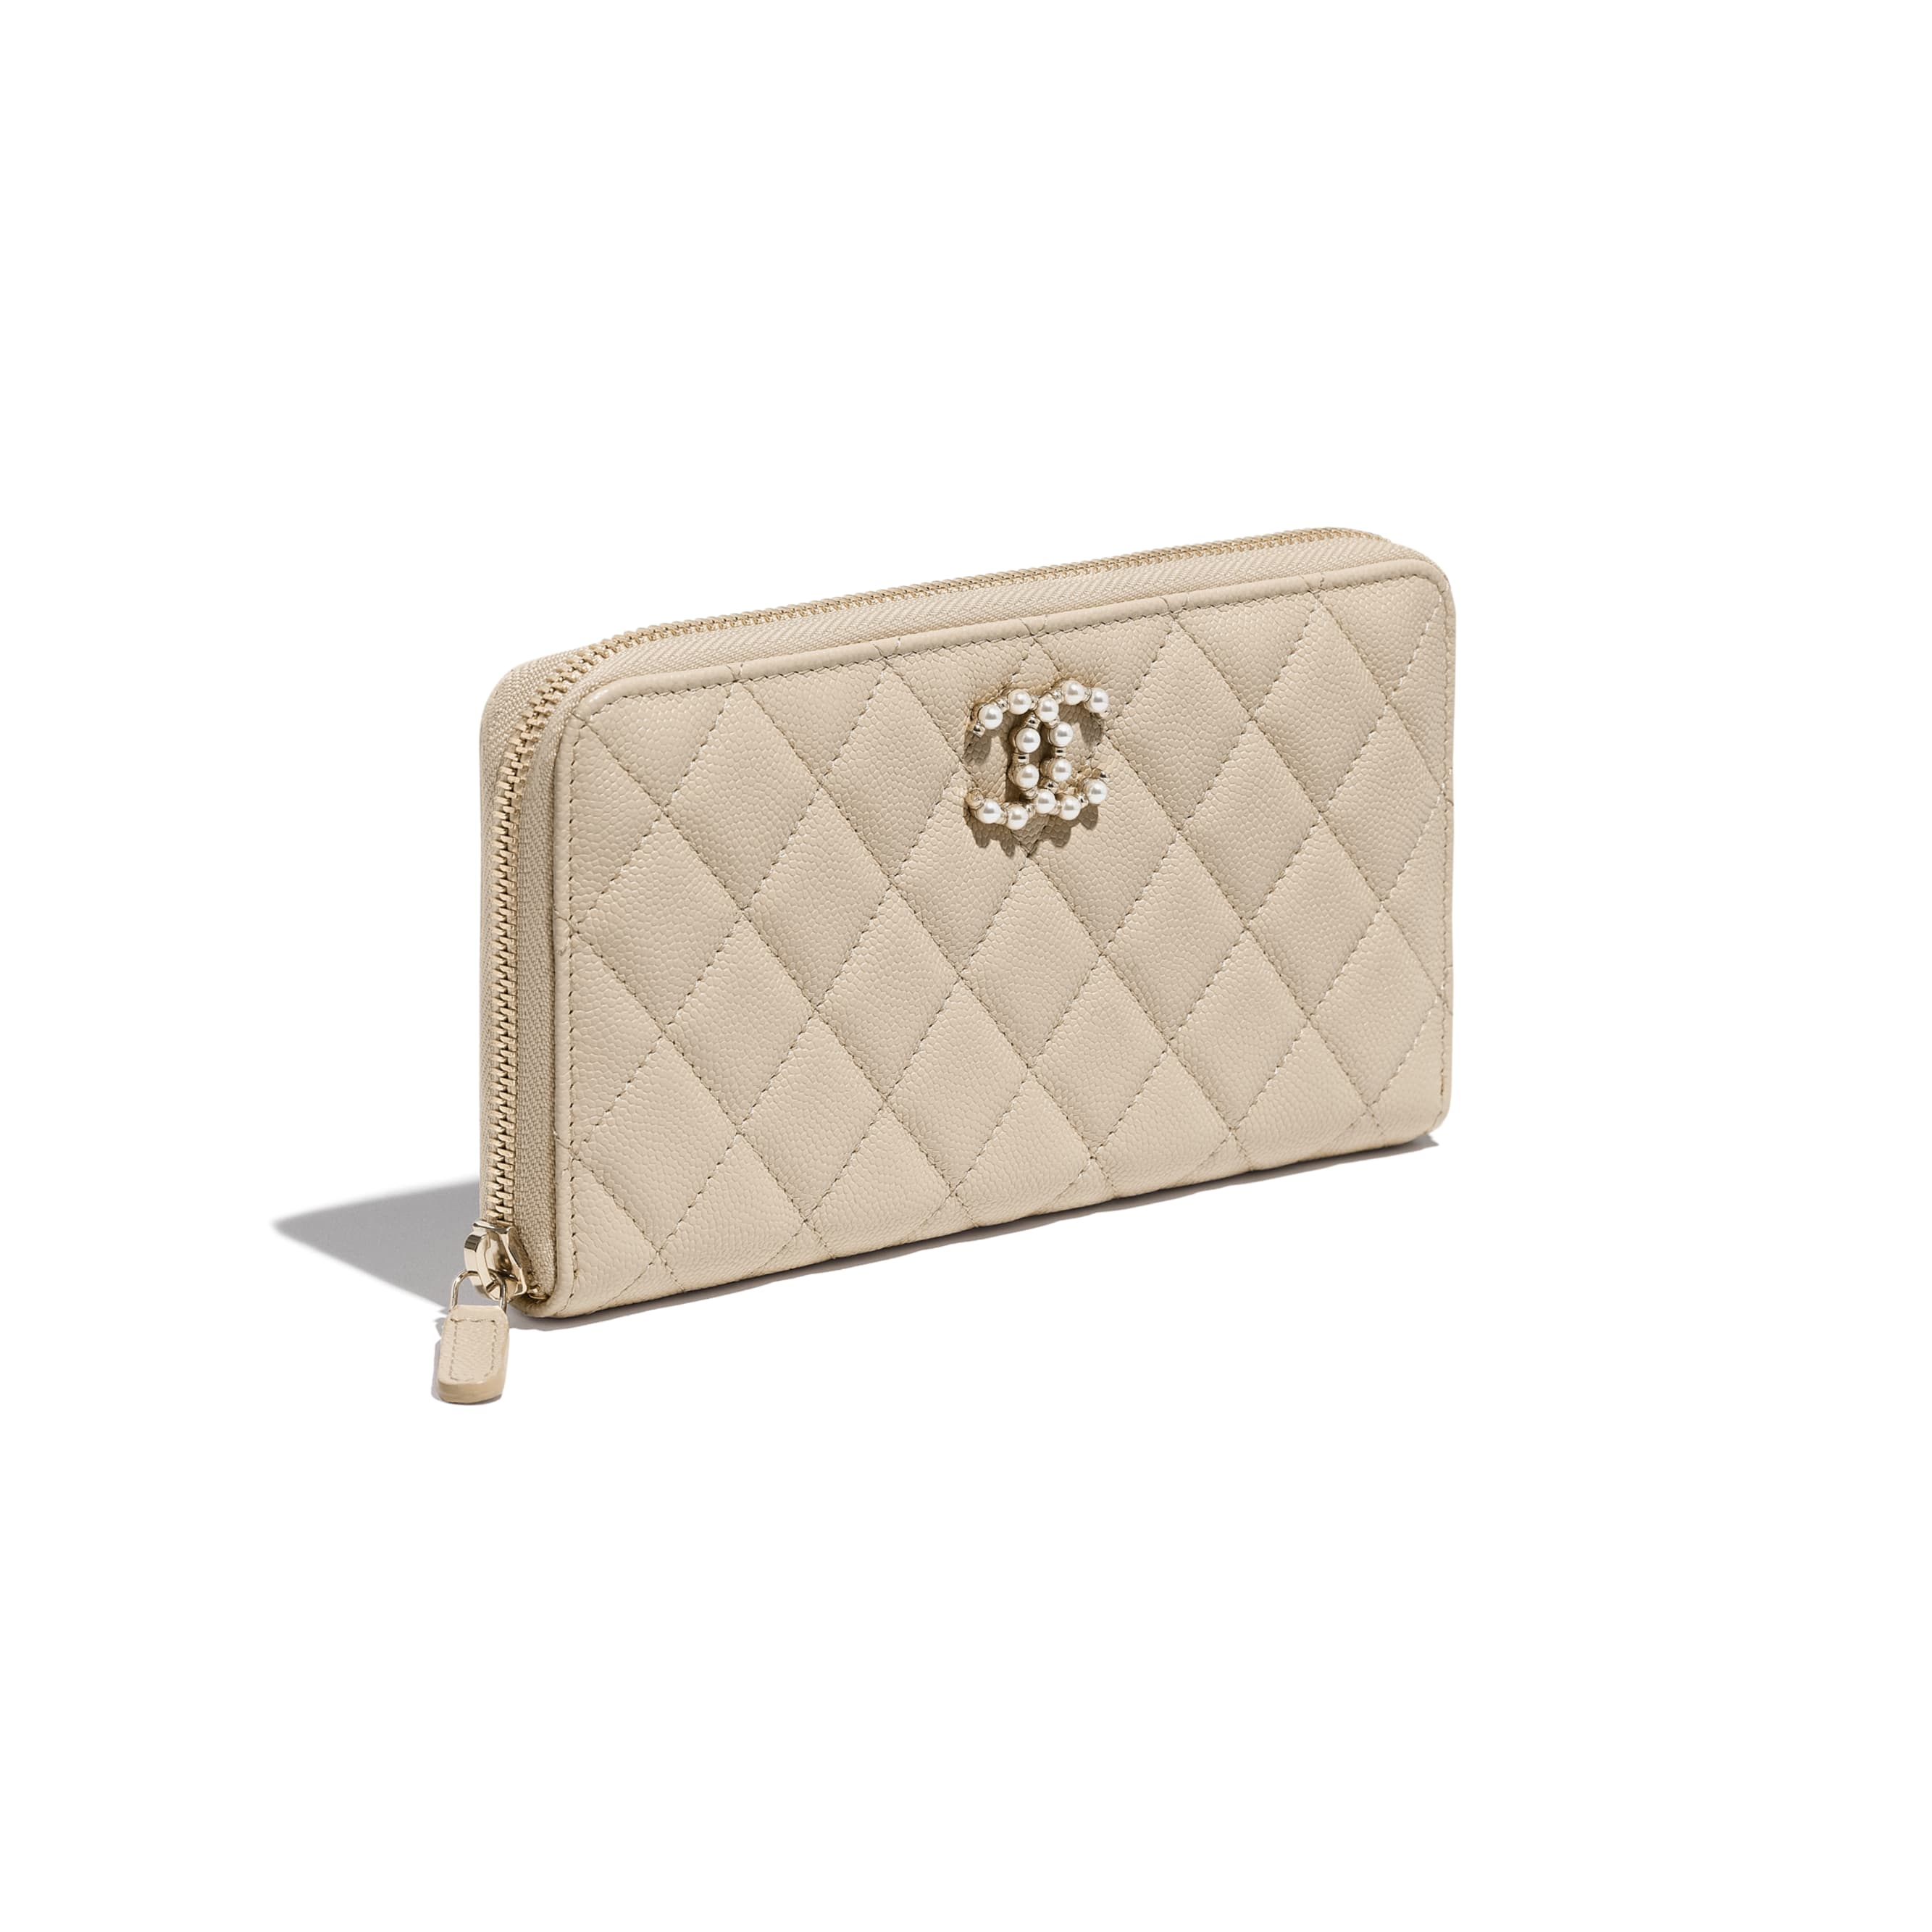 Long Zipped Wallet - Beige - Grained Calfskin & Gold-Tone Metal - CHANEL - Extra view - see standard sized version